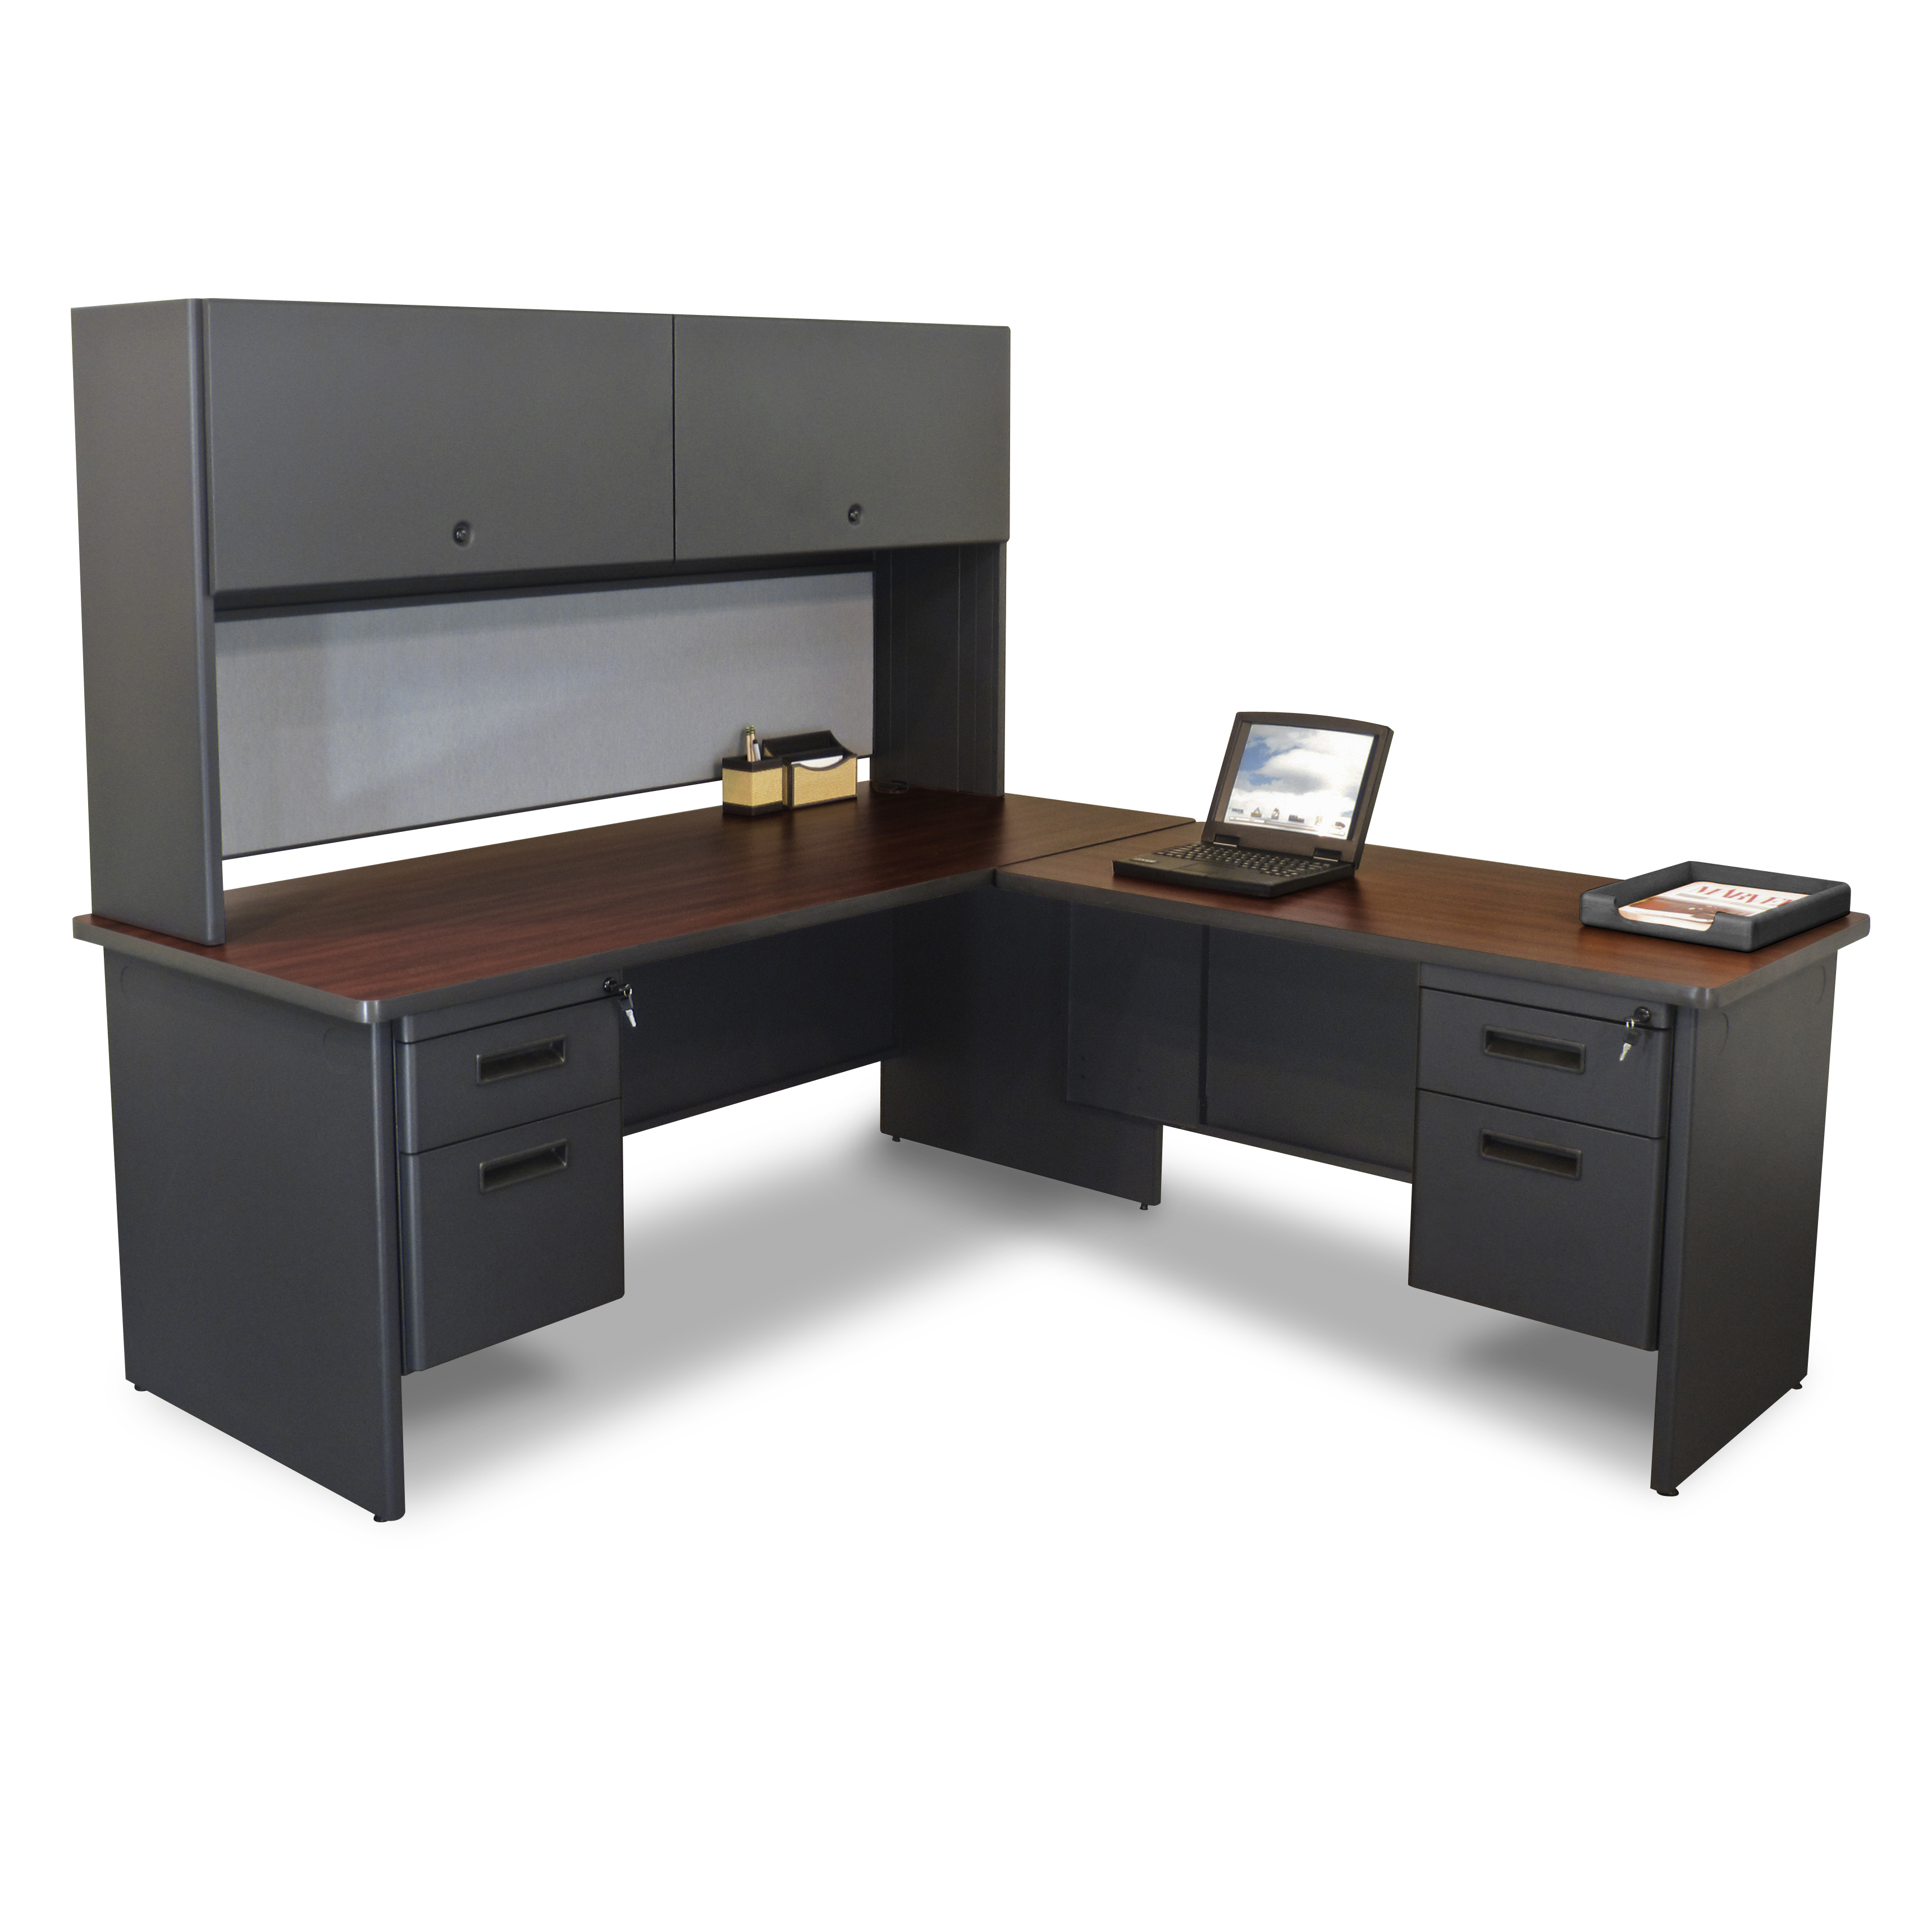 Best L Shaped Desk with hutch and storage in gray and brown color for home office furniture ideas